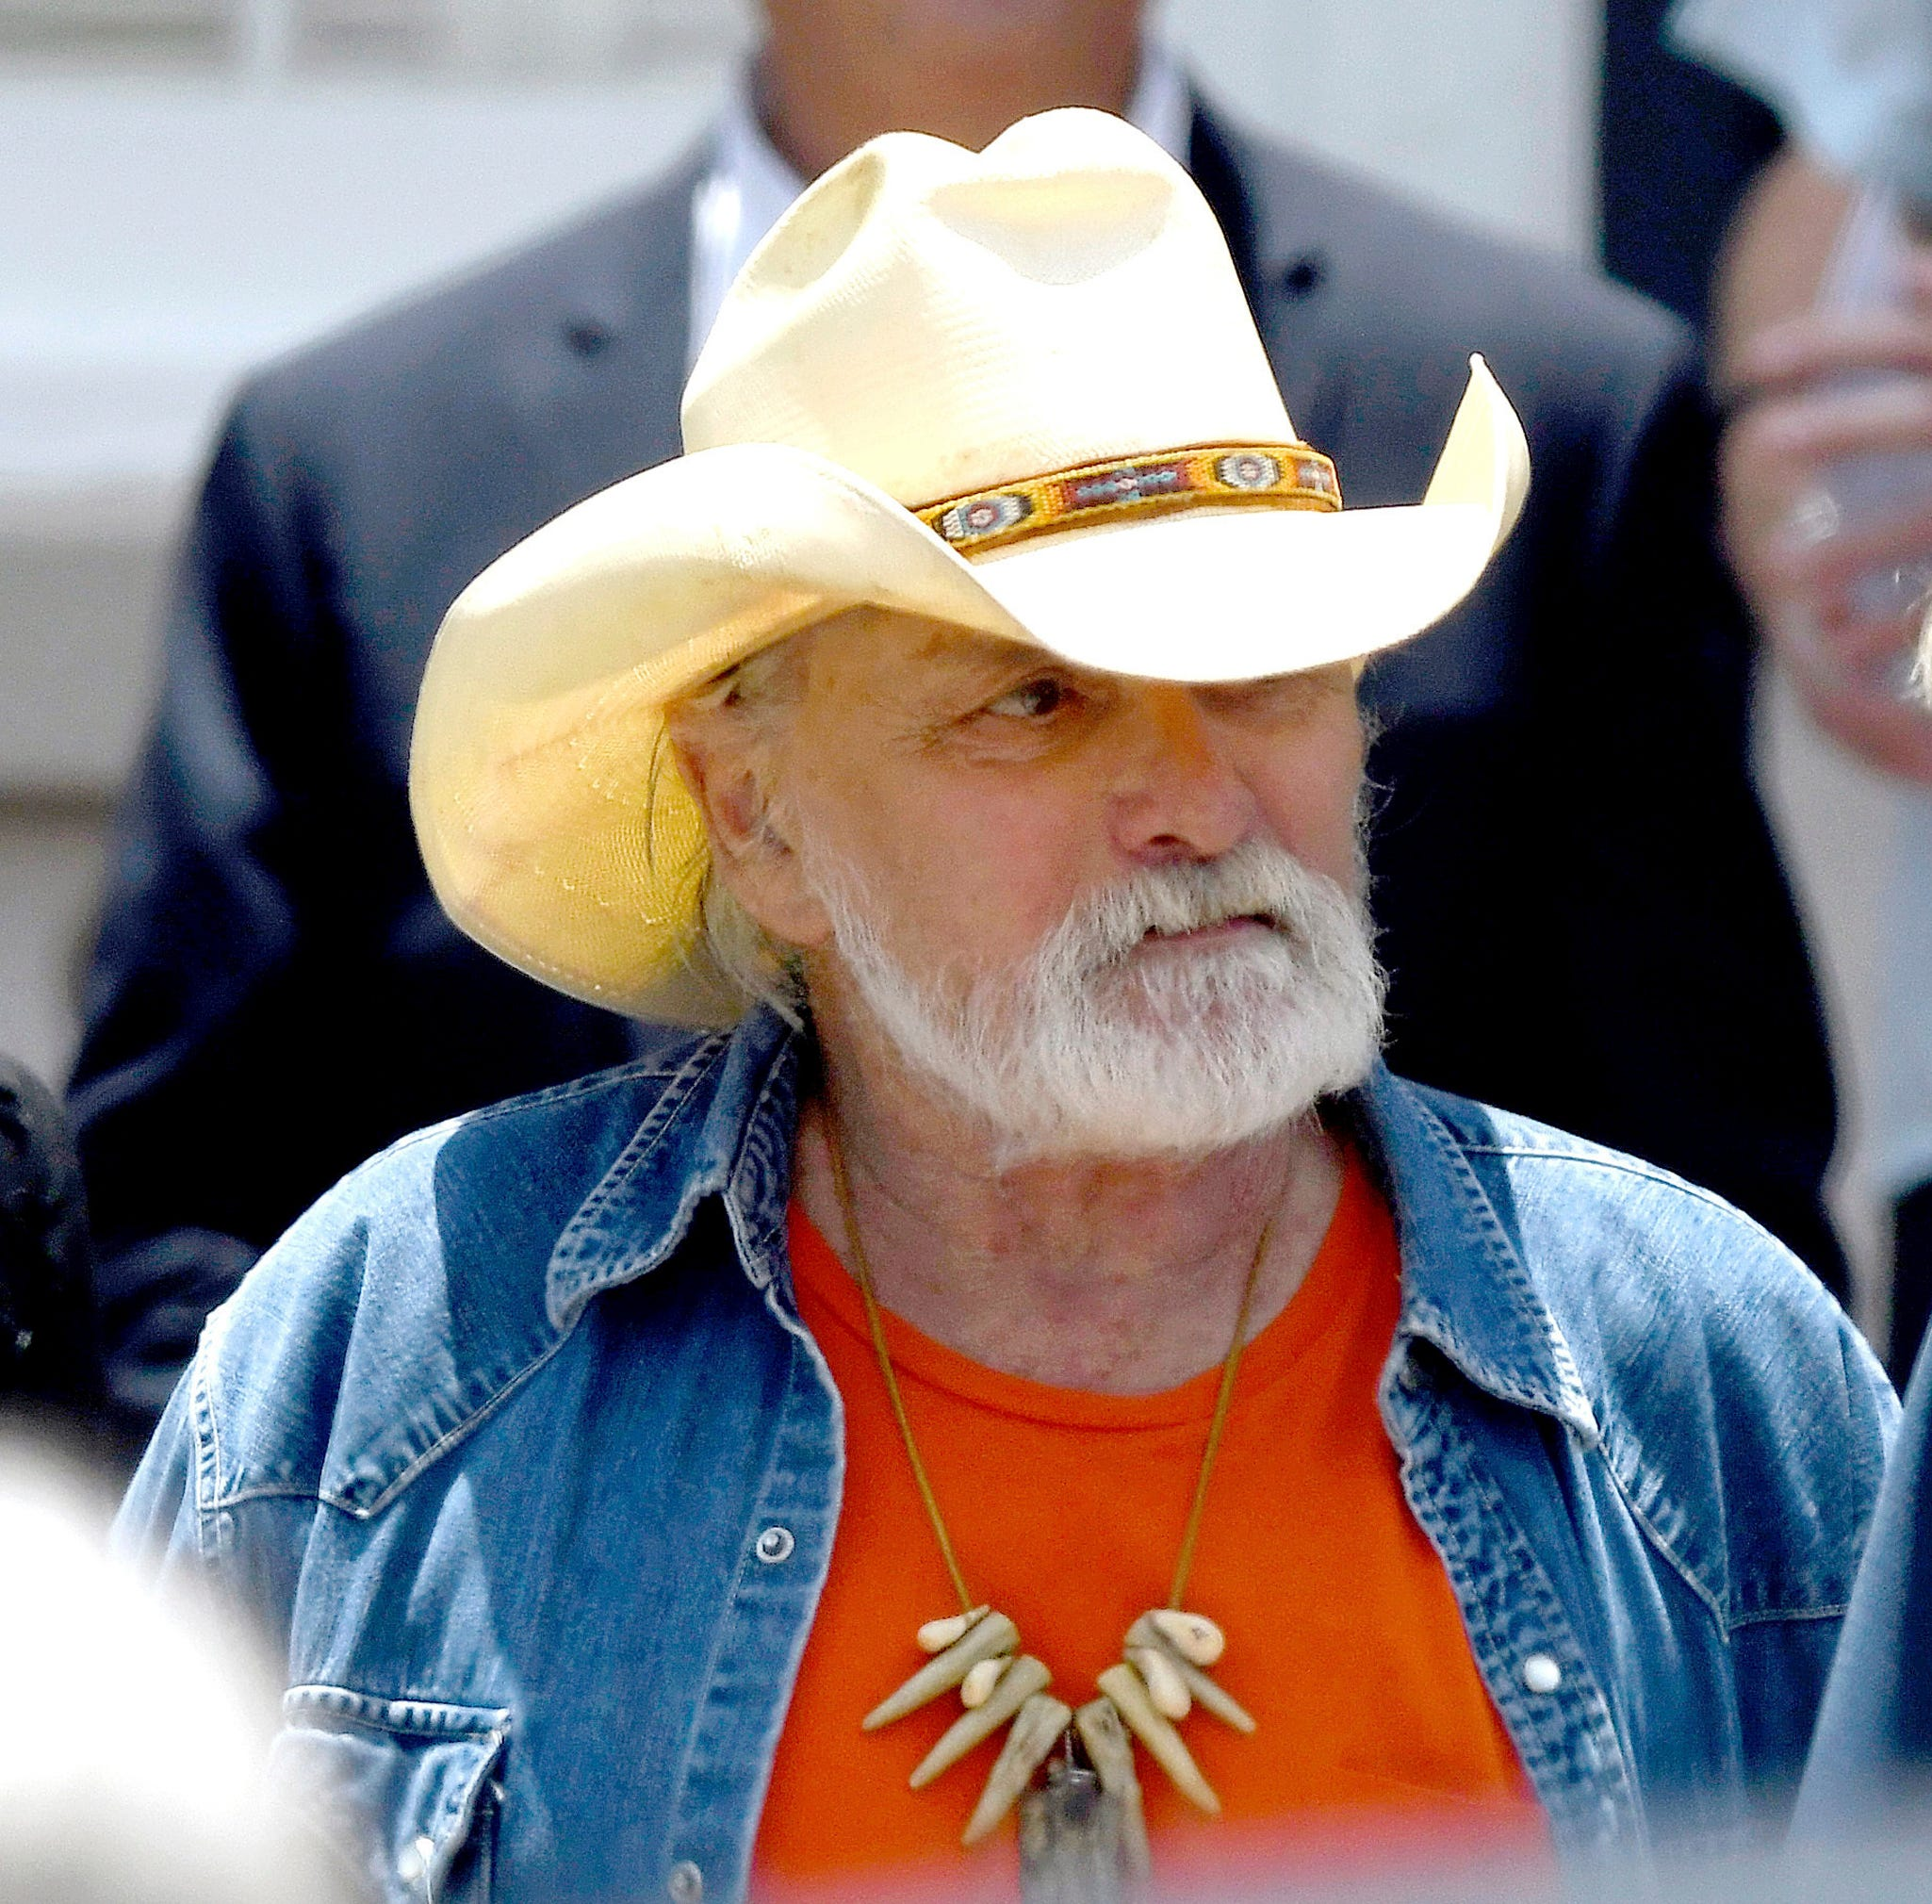 'Ramblin' Man' singer Dickie Betts critical but stable after 'freak accident'